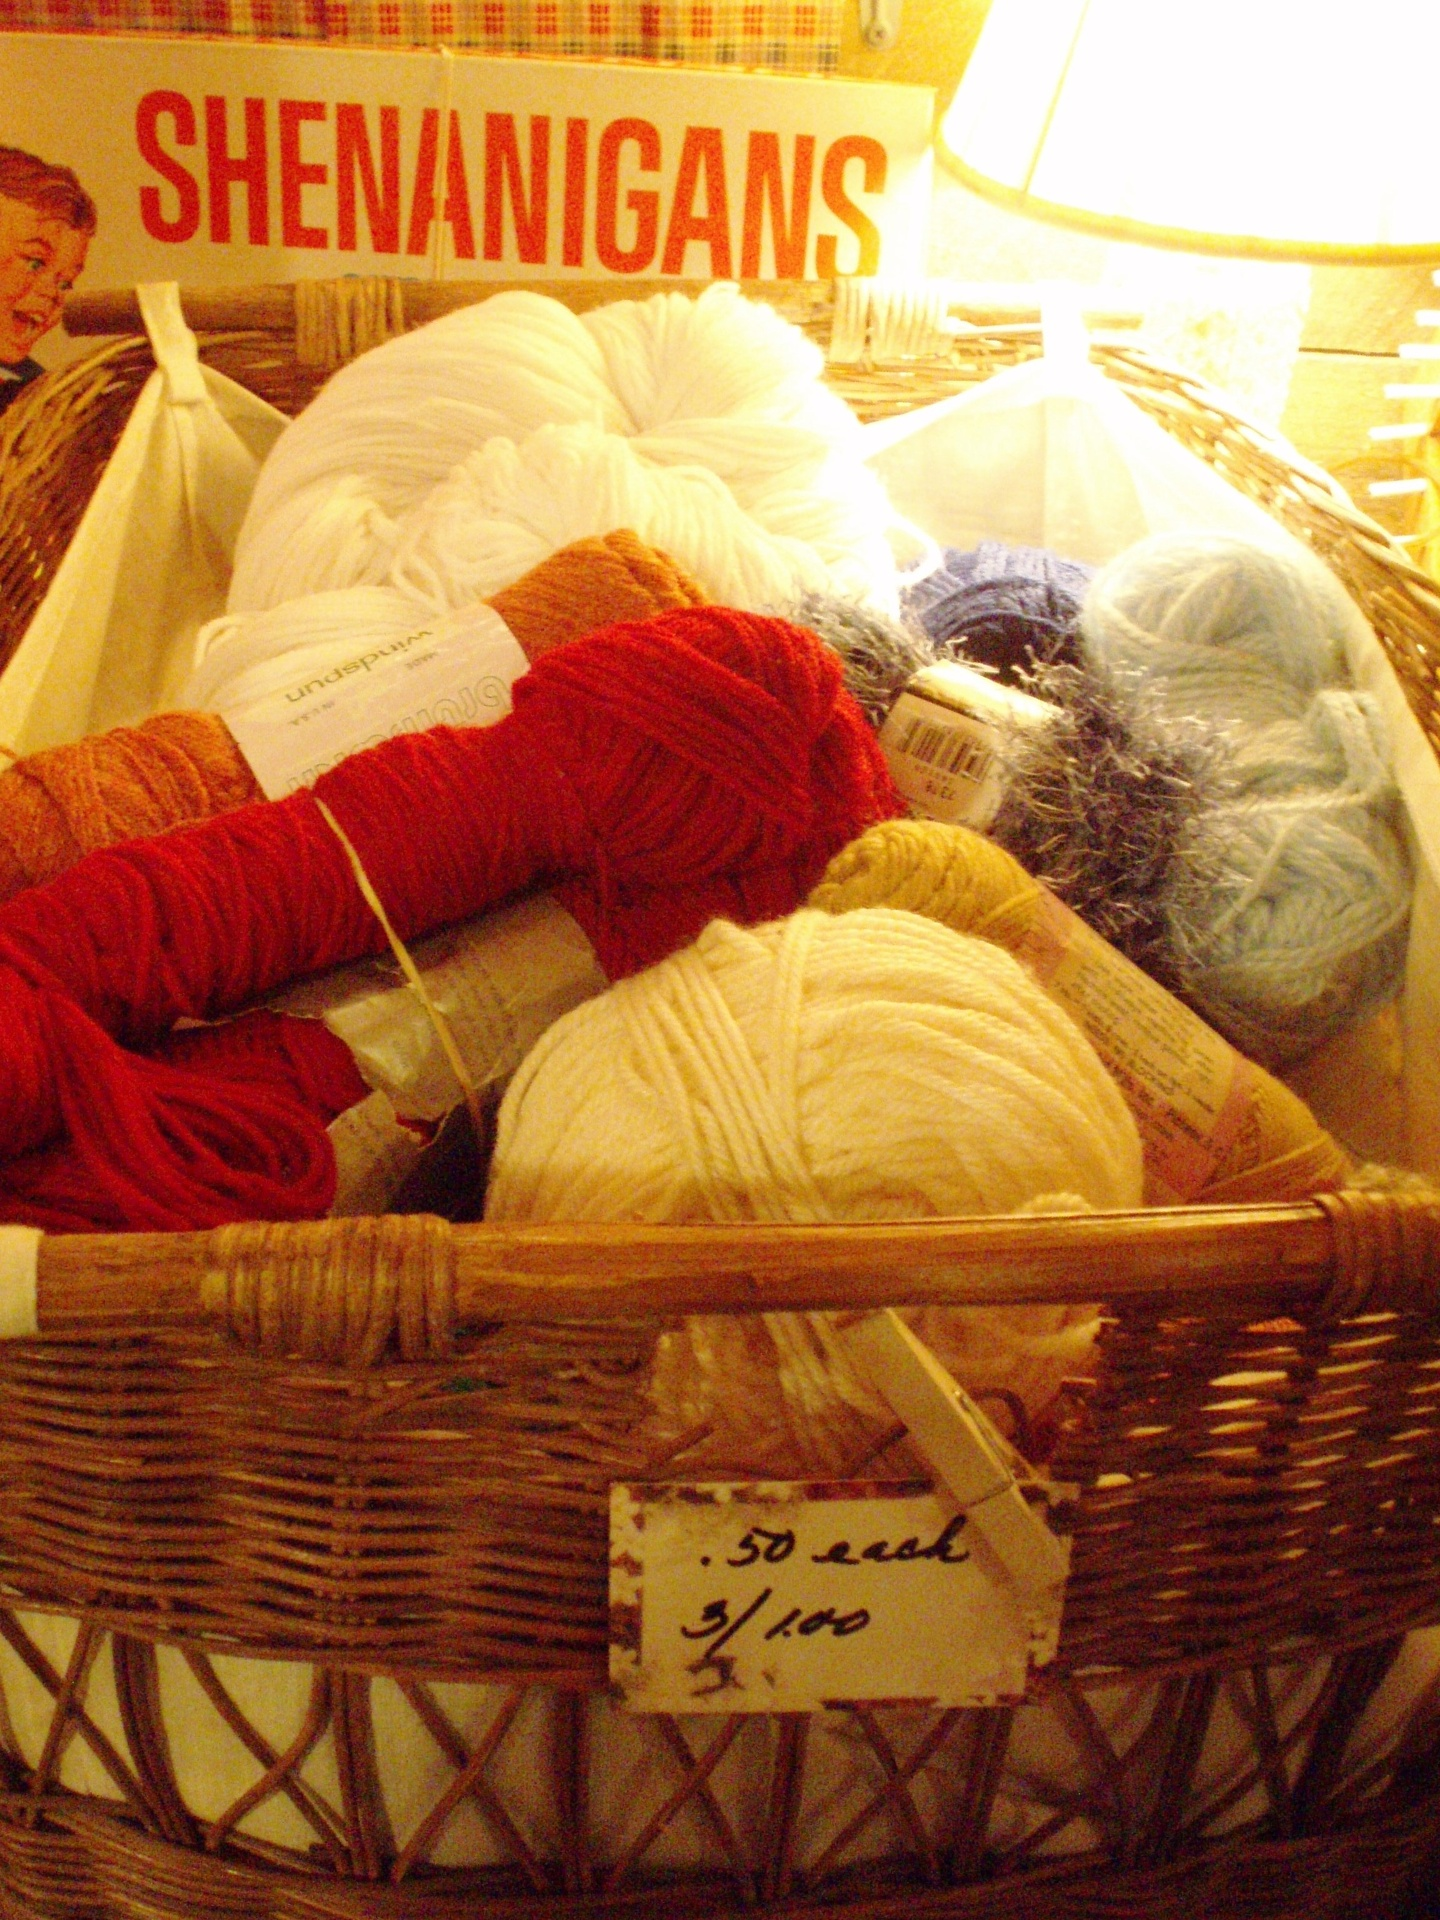 more skeins of yarn at a very low price!